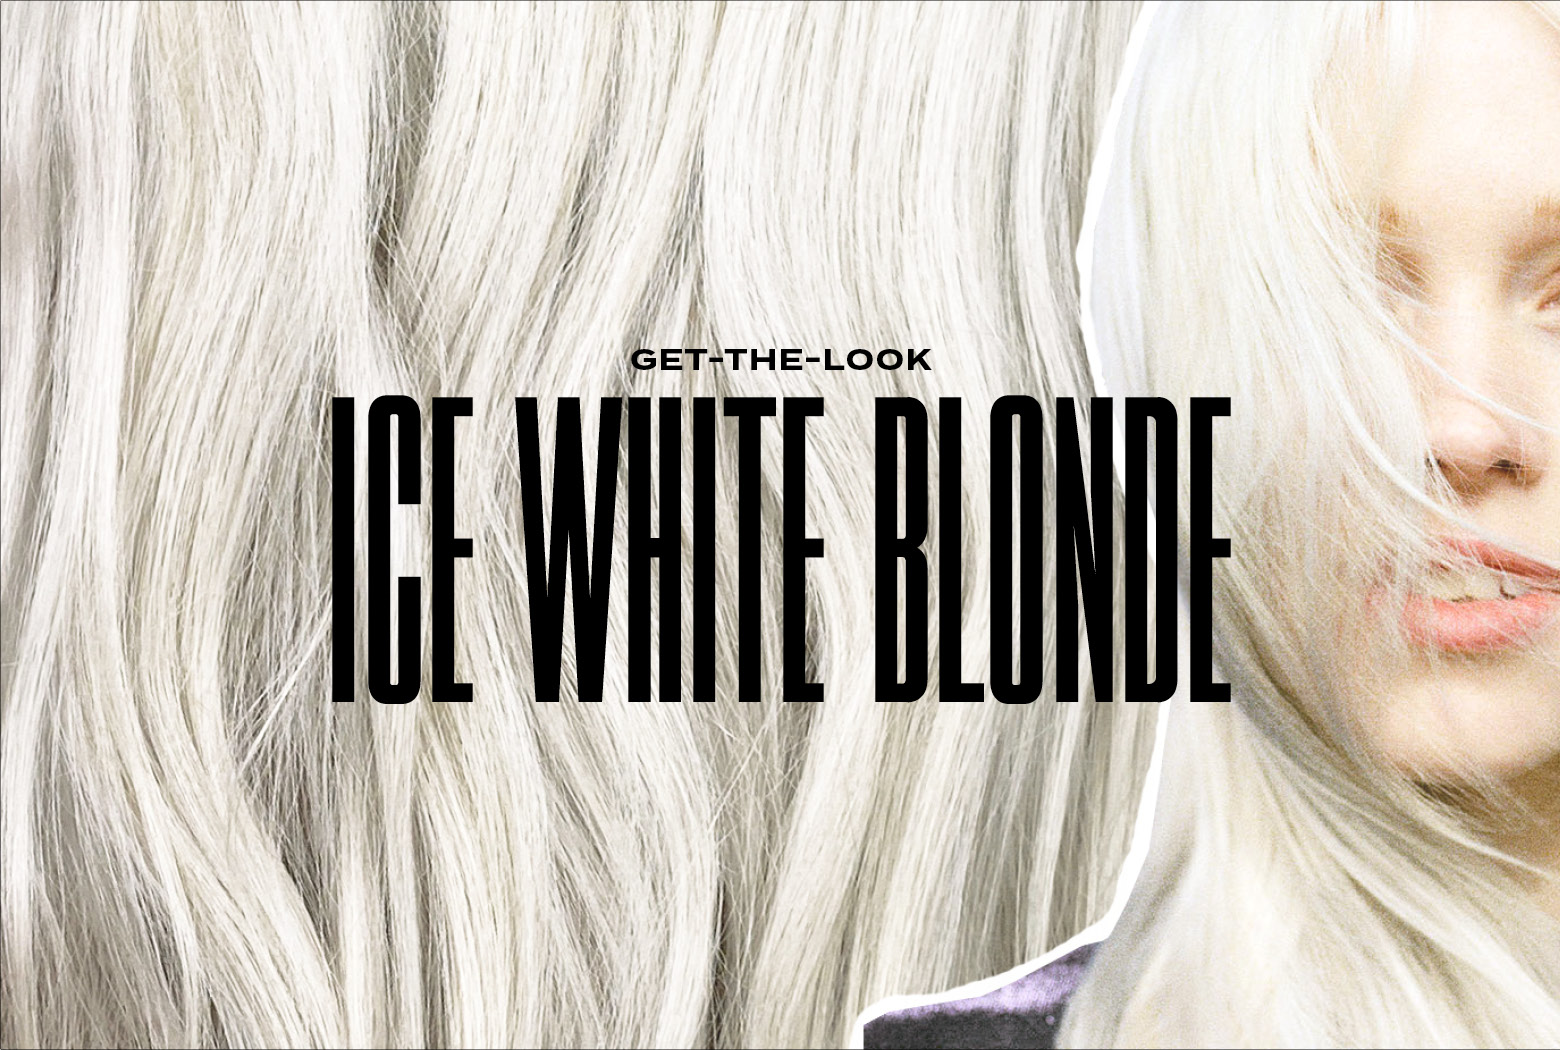 Ice White Blonde image